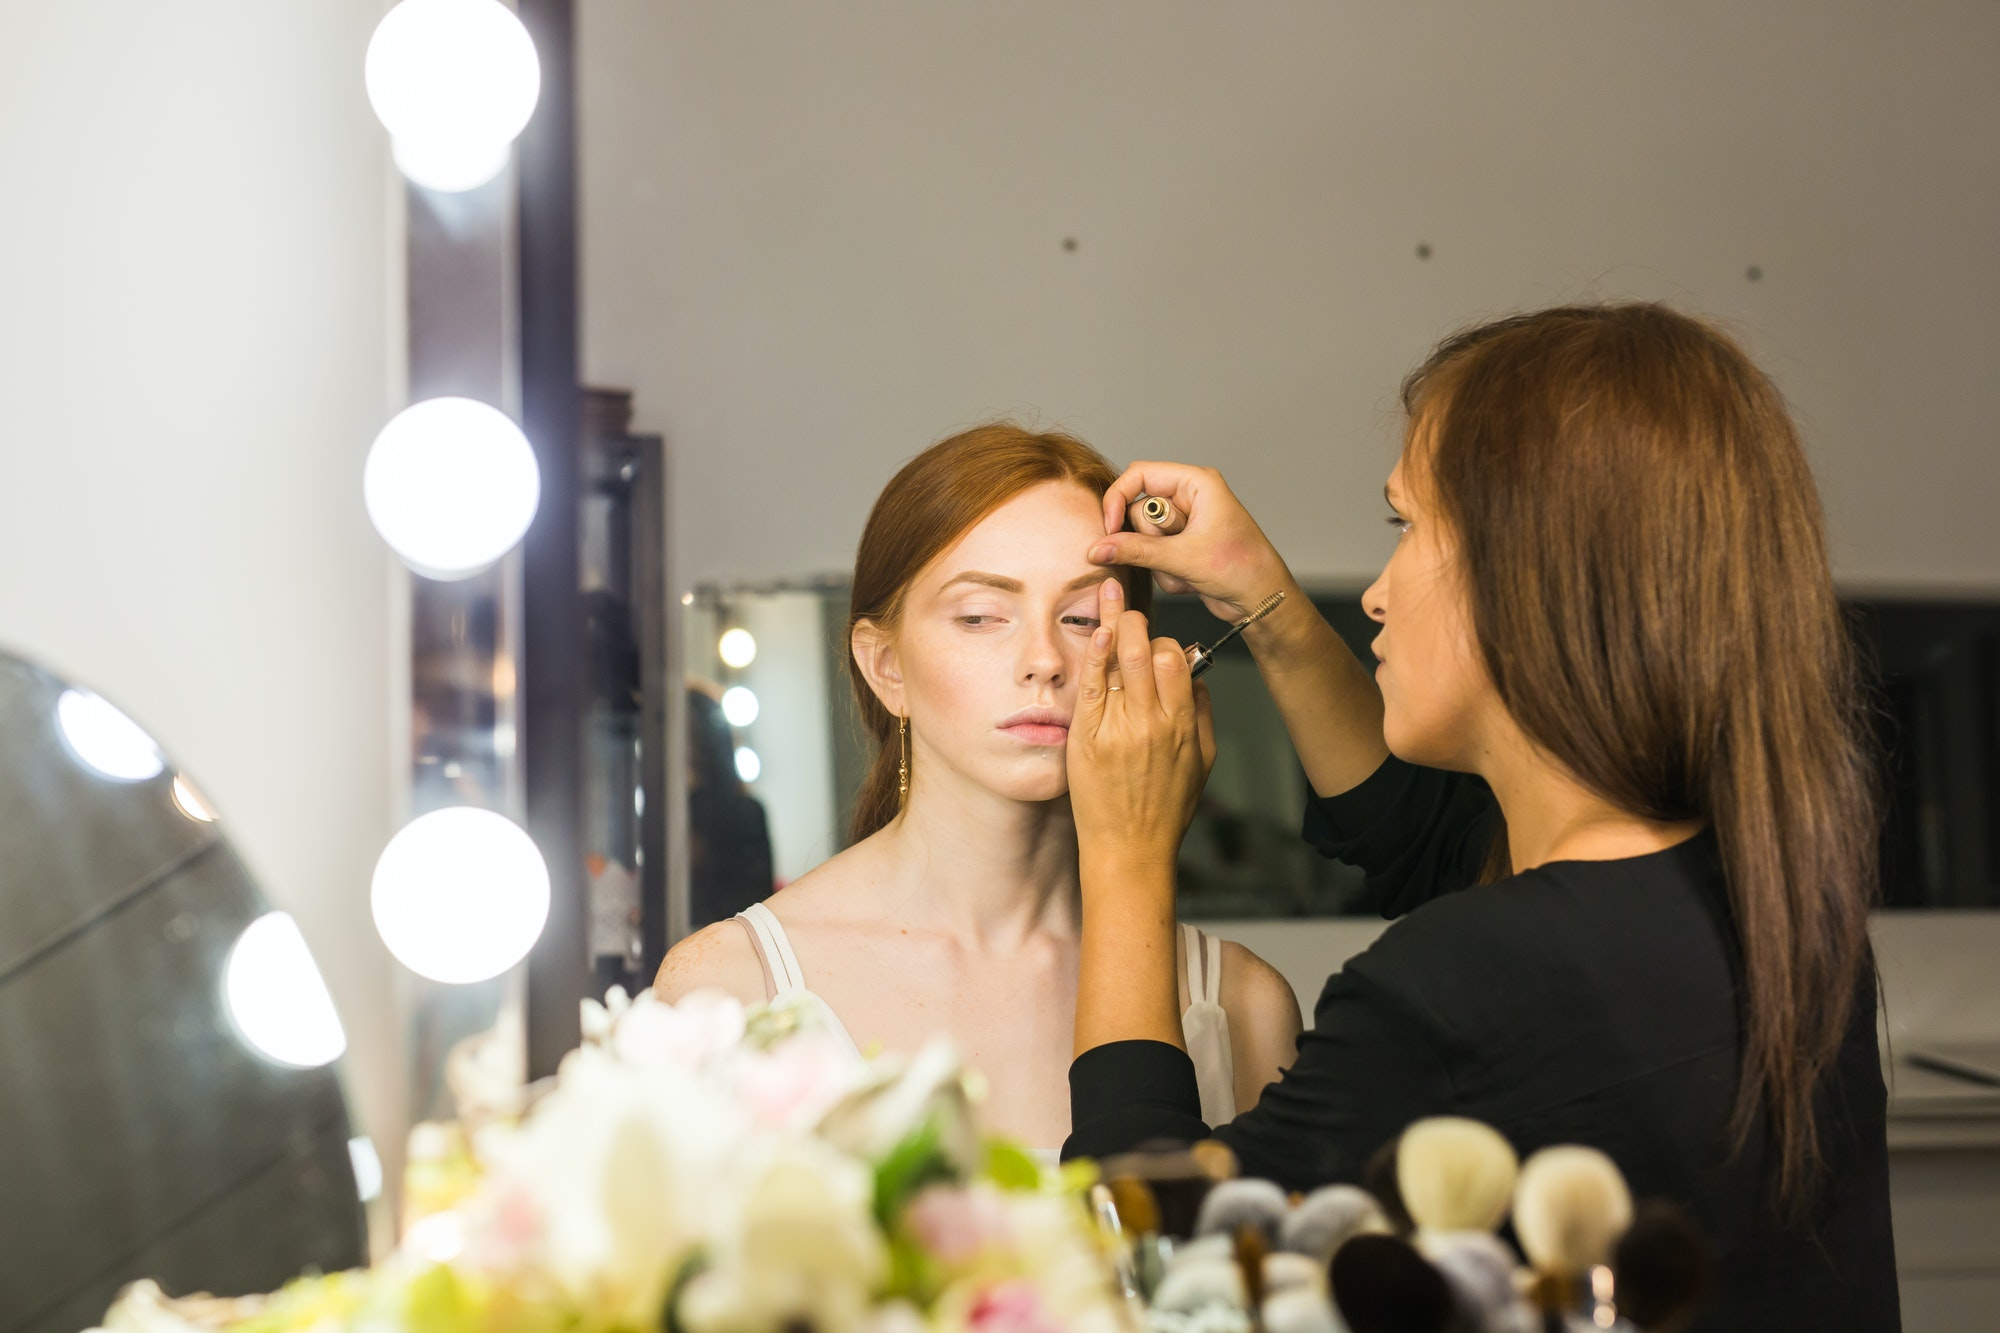 Make-up artist working with brush on model face